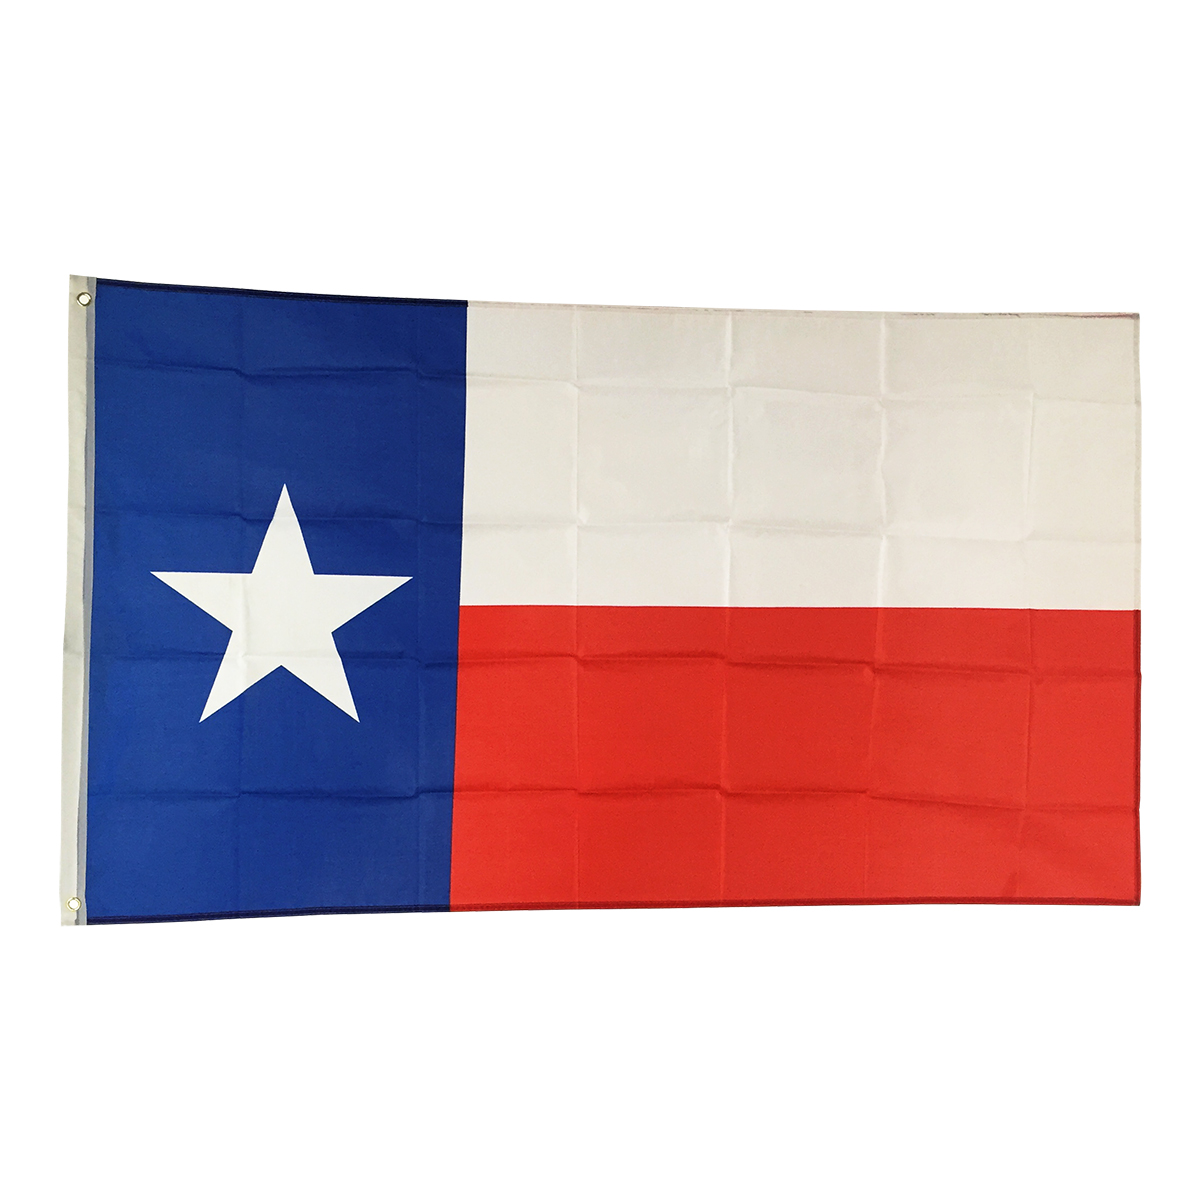 New 3' x 5' Polyester TEXAS STATE FLAG Lone Star TX USA ...